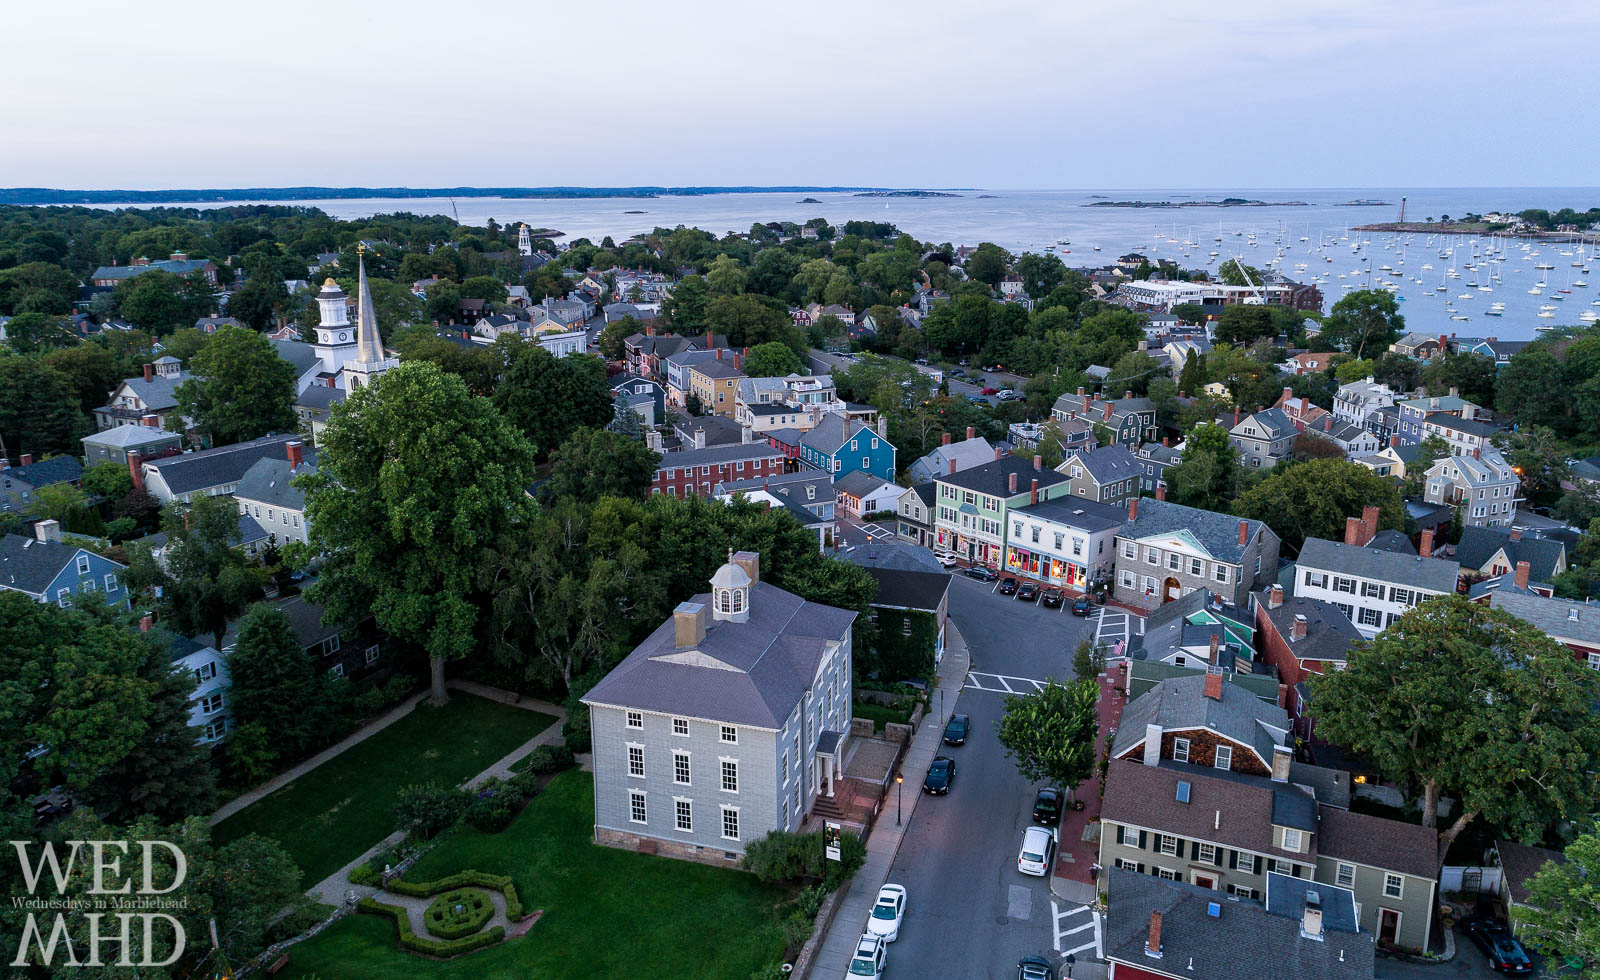 Old Town to some, historic downtown Marblehead has great architecture, shops and is situated steps from Marblehead Harbor